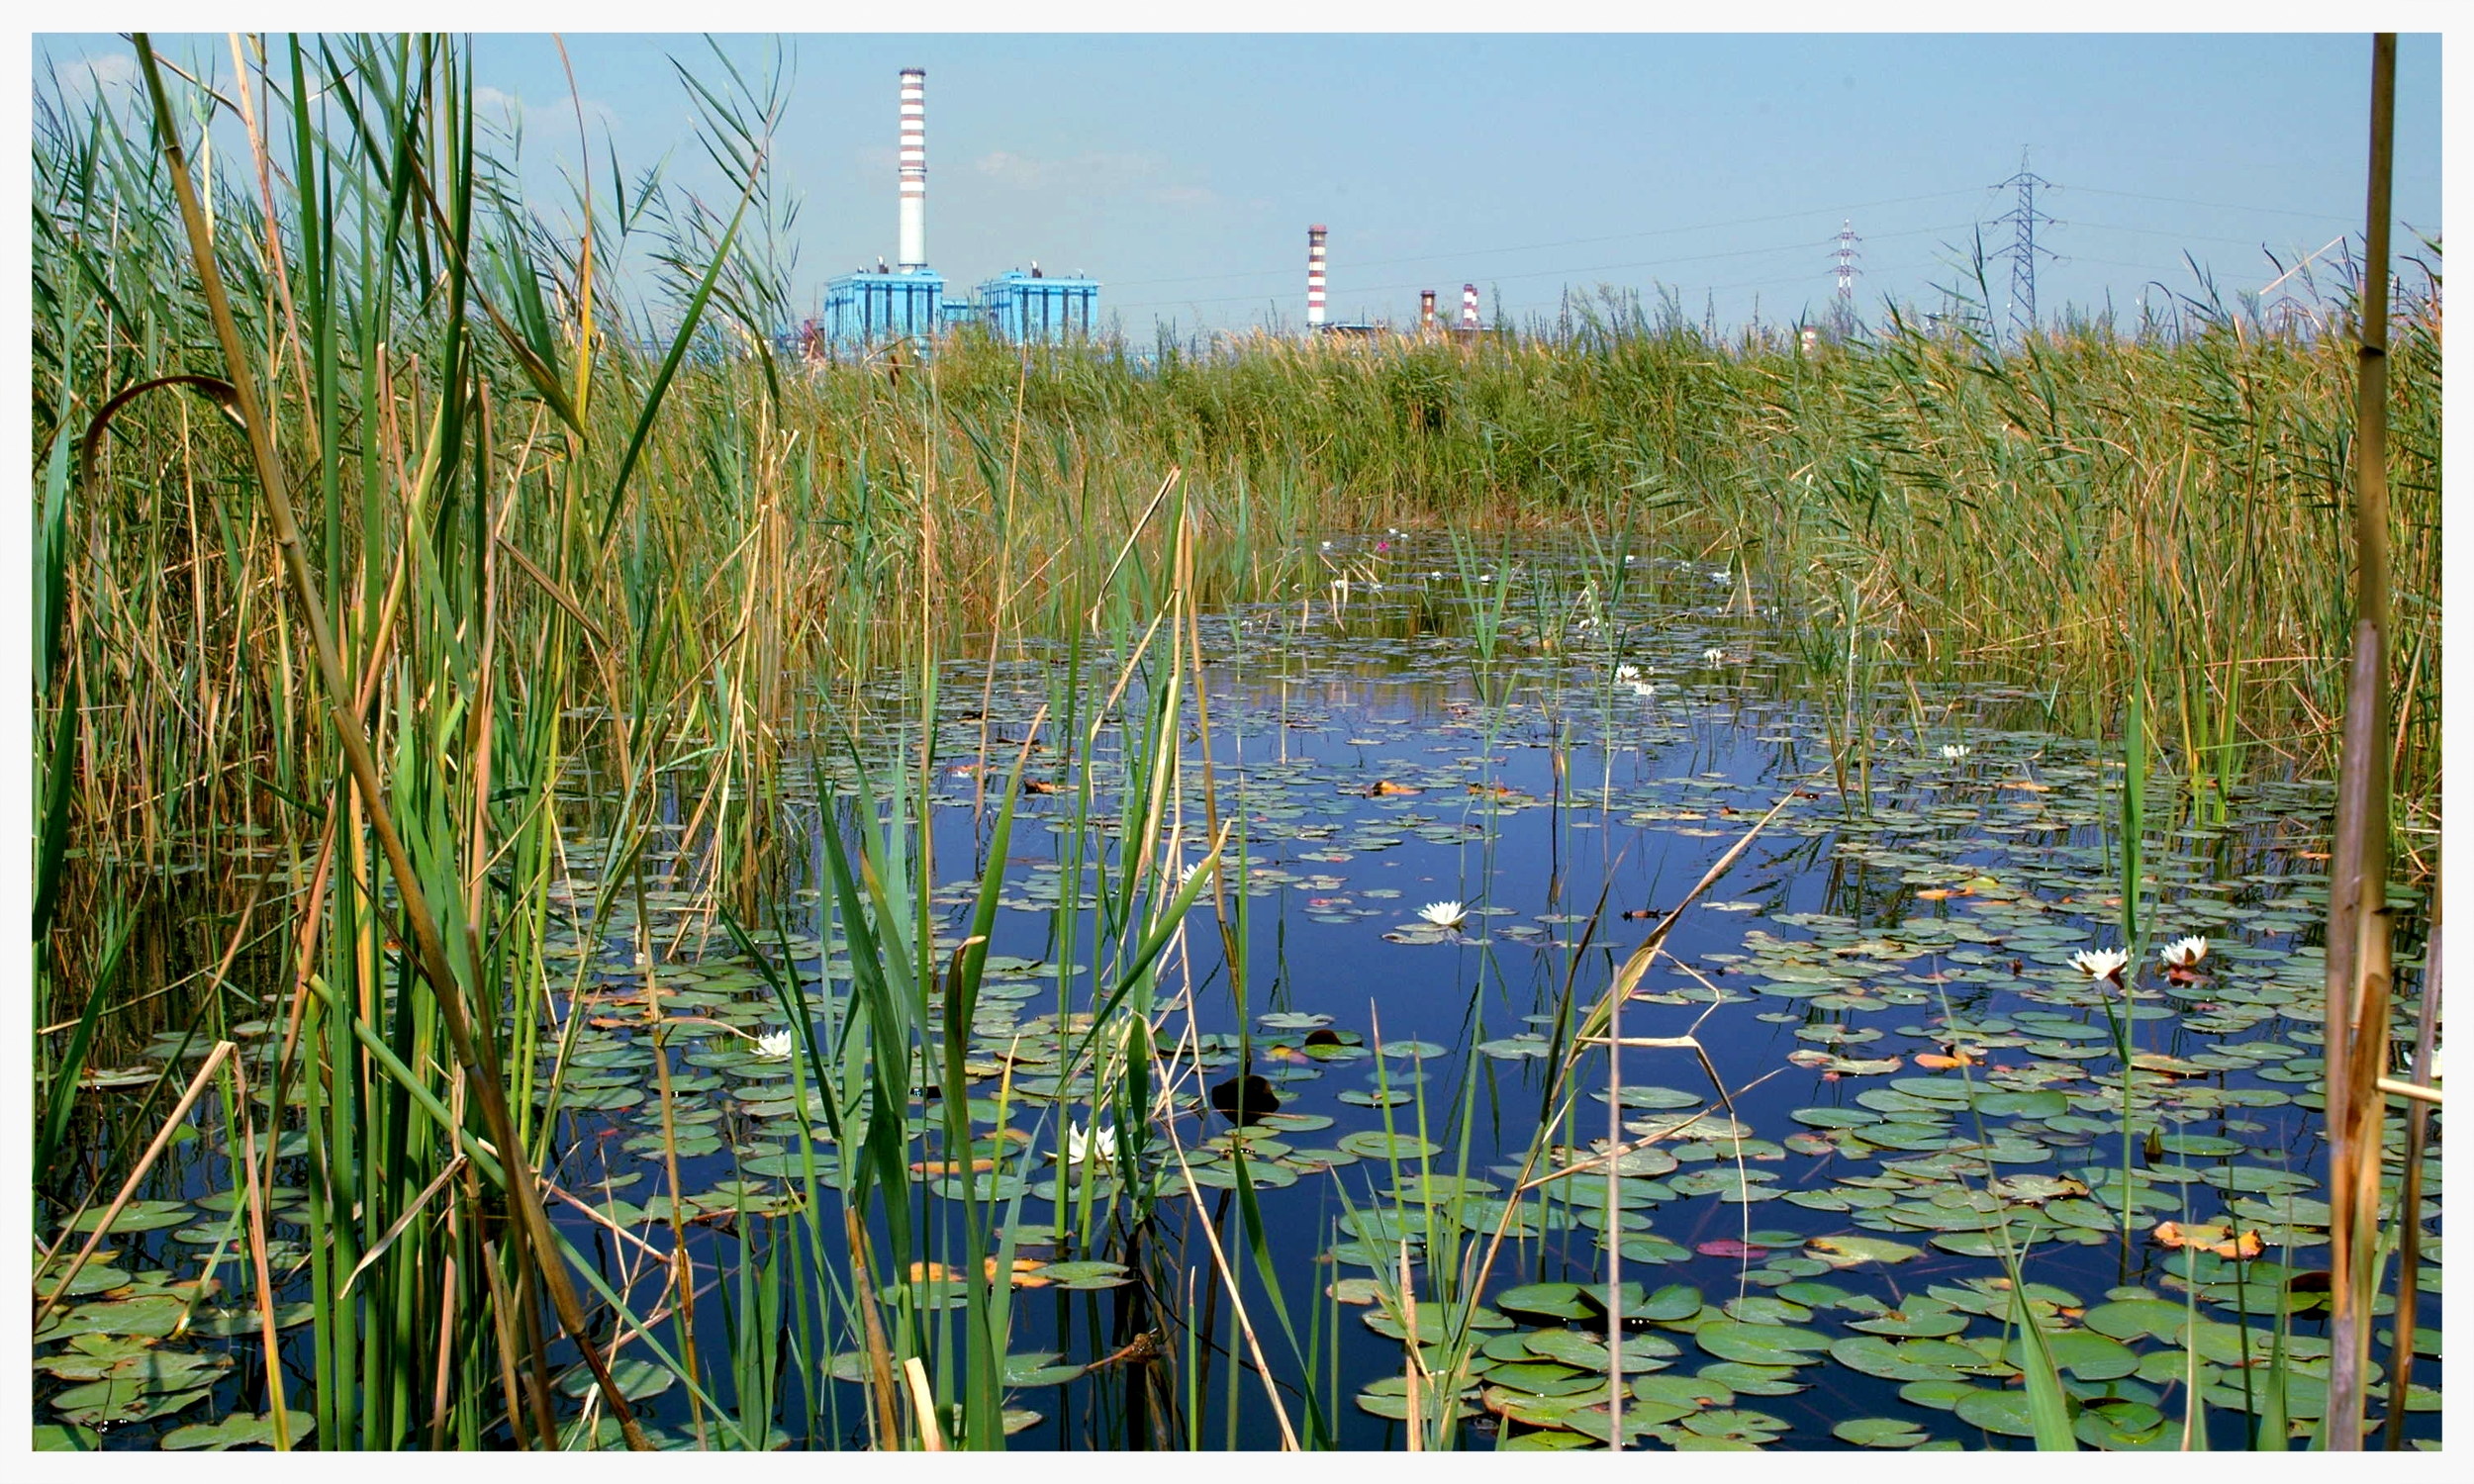 FlowWest's experience with constructed wetlands for mitigation, habitat creation, and water pollution control spans over 15 years. We've designed systems up to 250 acres in size on three continents. We are experts in development, design, and implementation of wetland and microbial systems for water pollution control in stormwater, wastewater, agricultural, mining, and industrial sectors.